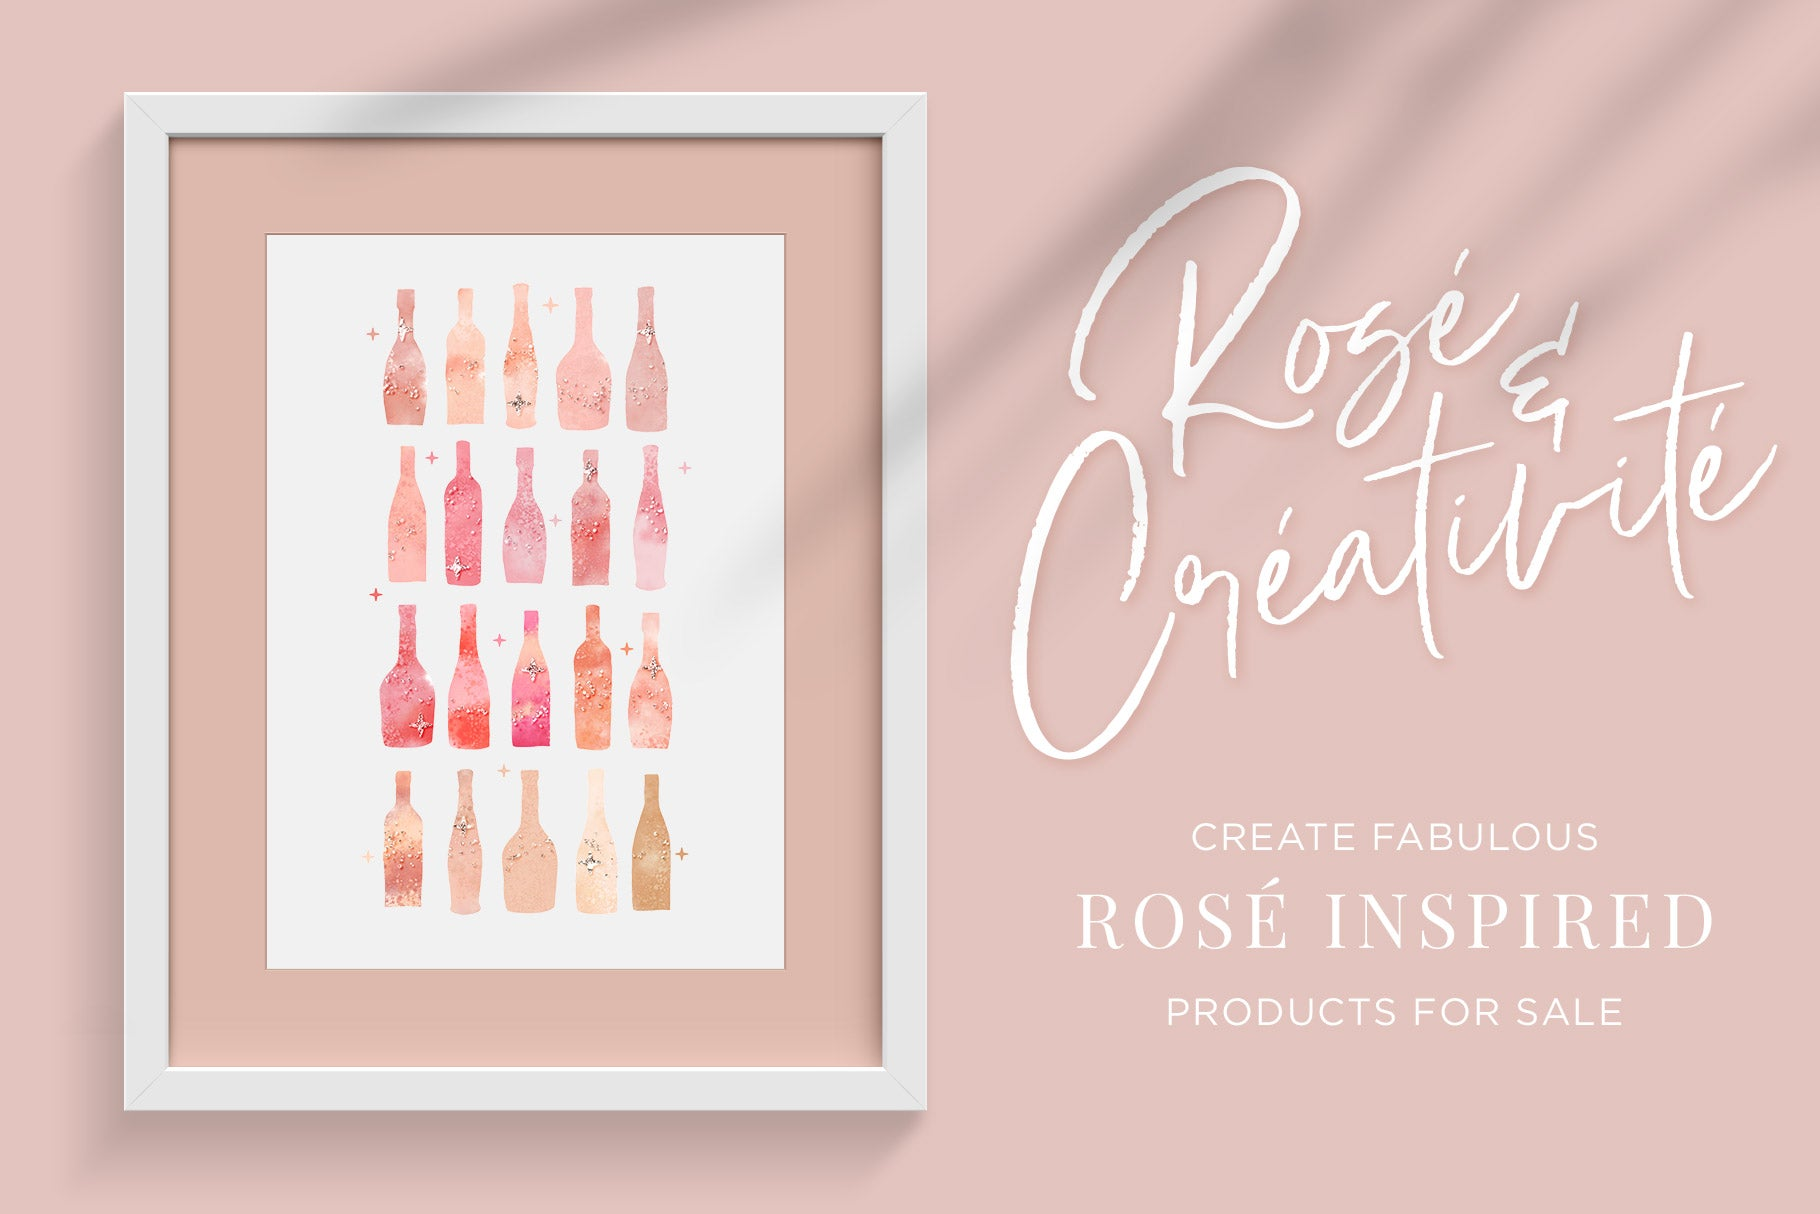 Rosé Wine Inspired Color Palettes & Brushes - Creators Couture